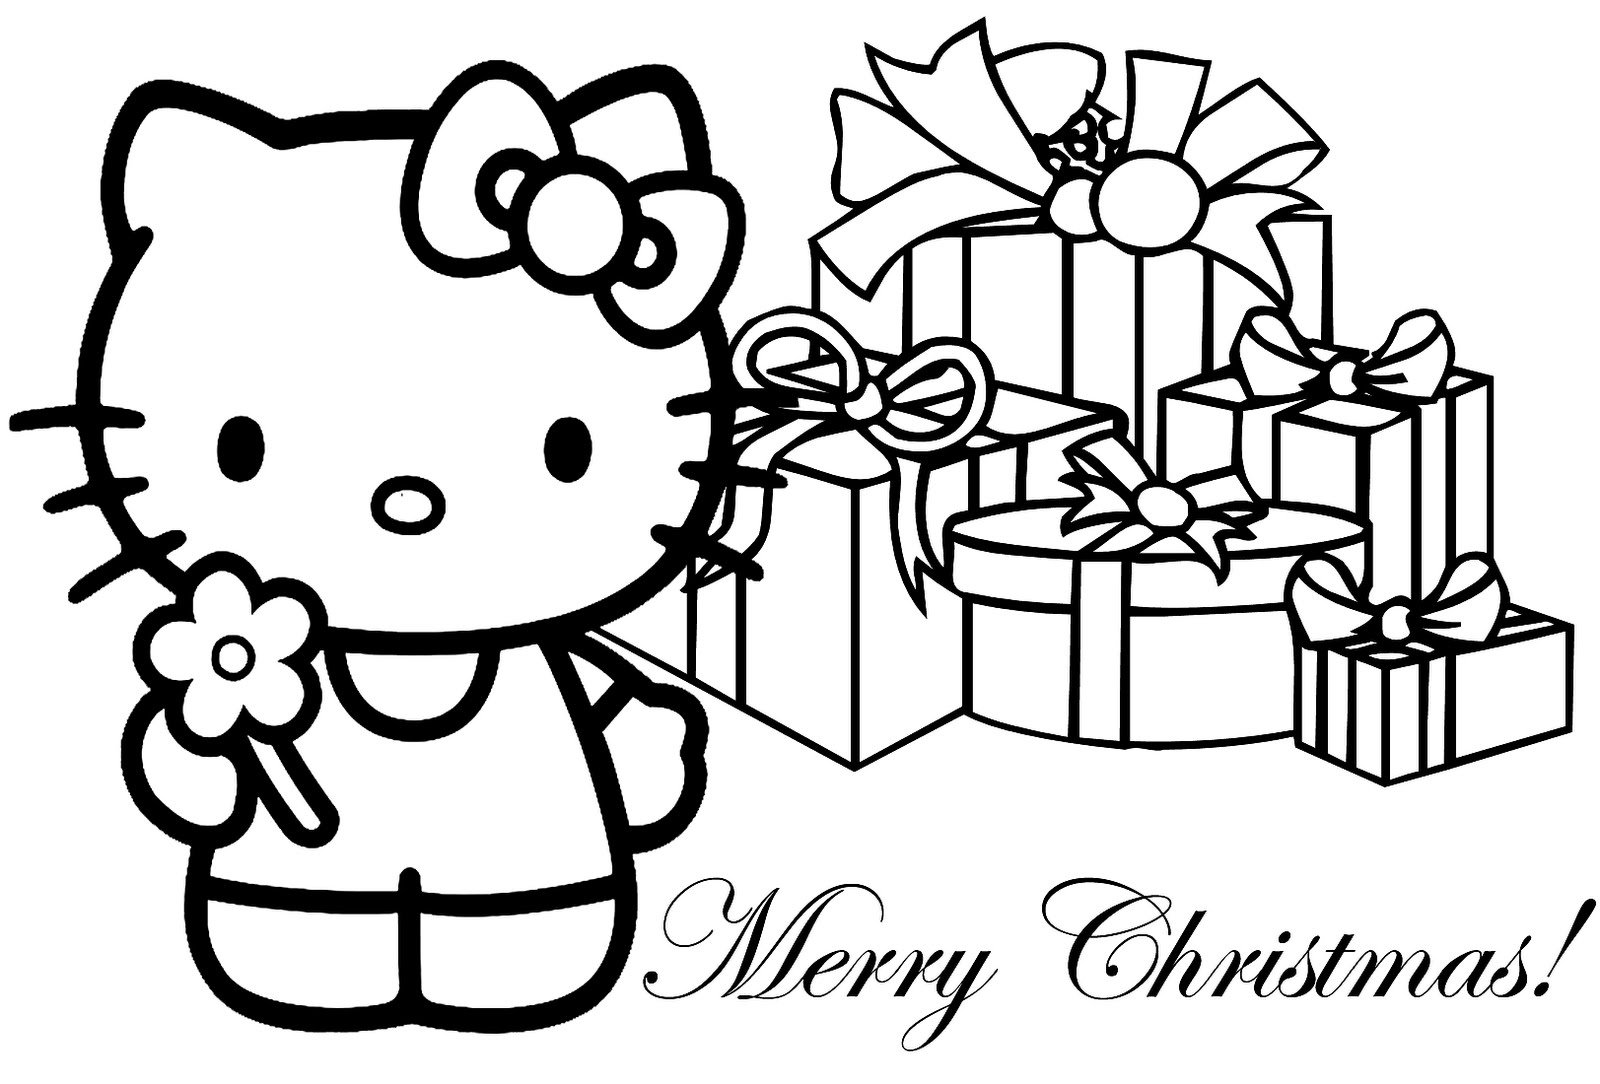 Christmas Coloring Pages Free Printable Archives For Coloring Page